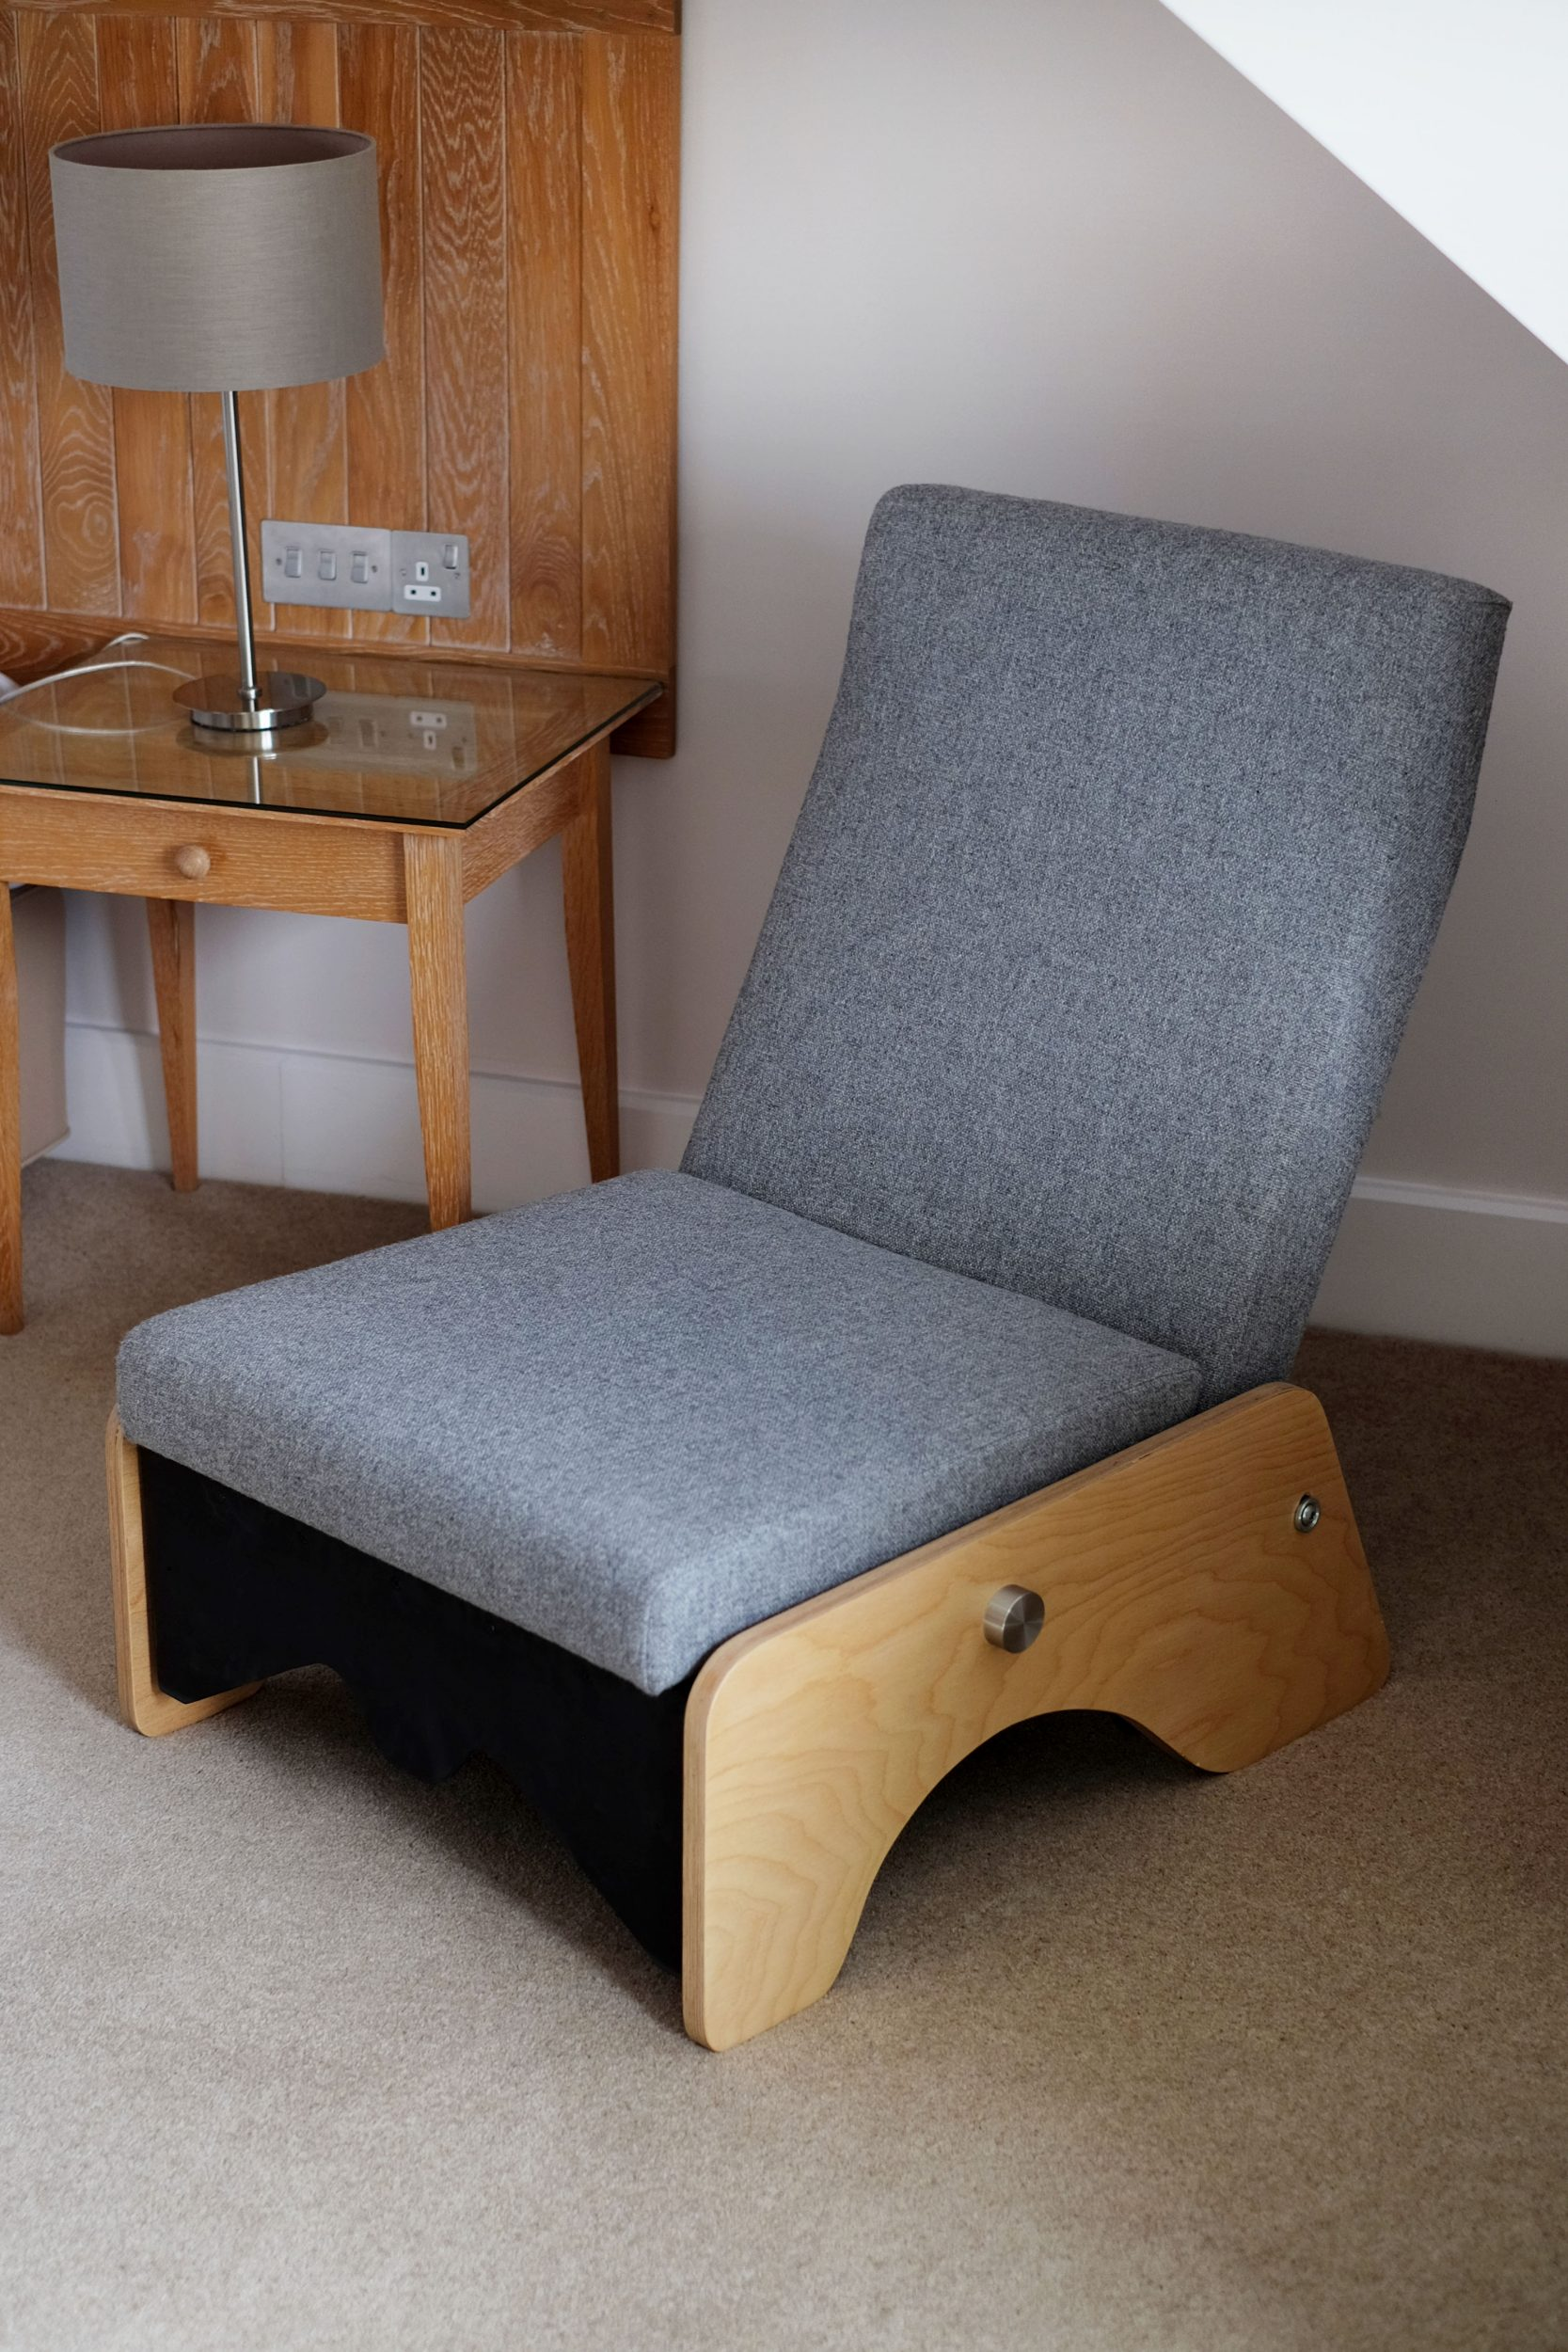 places to buy sofas in cornwall sofa throws uk only what 39s on archives the beach hotel boutique